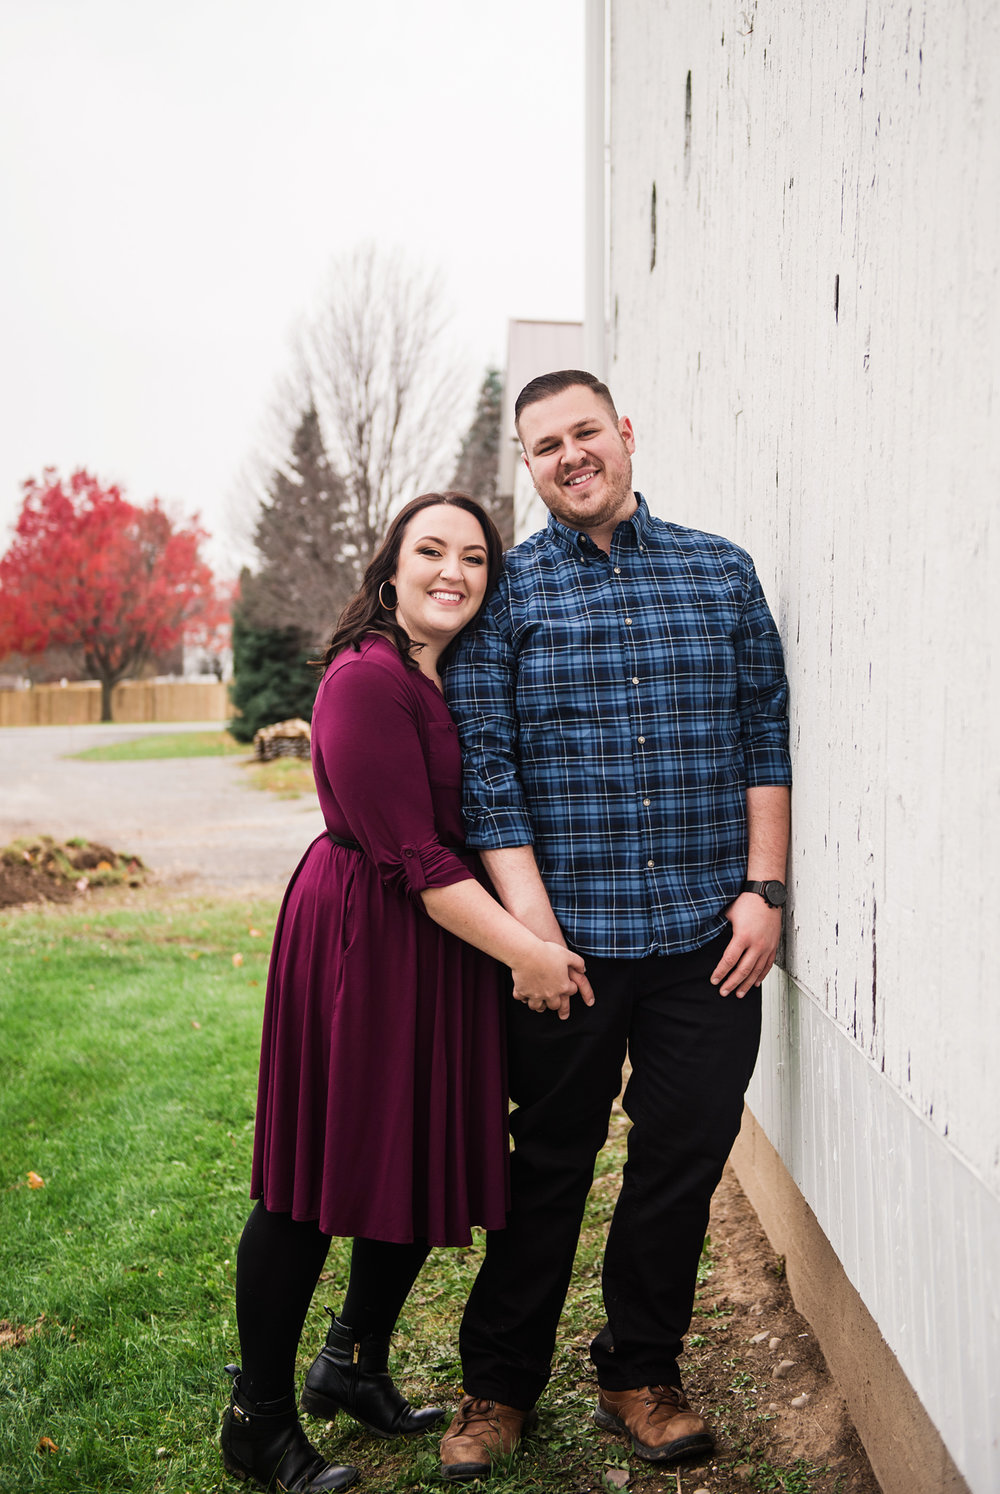 Tinker_Nature_Park_Rochester_Engagement_Session_JILL_STUDIO_Rochester_NY_Photographer_DSC_0594.jpg